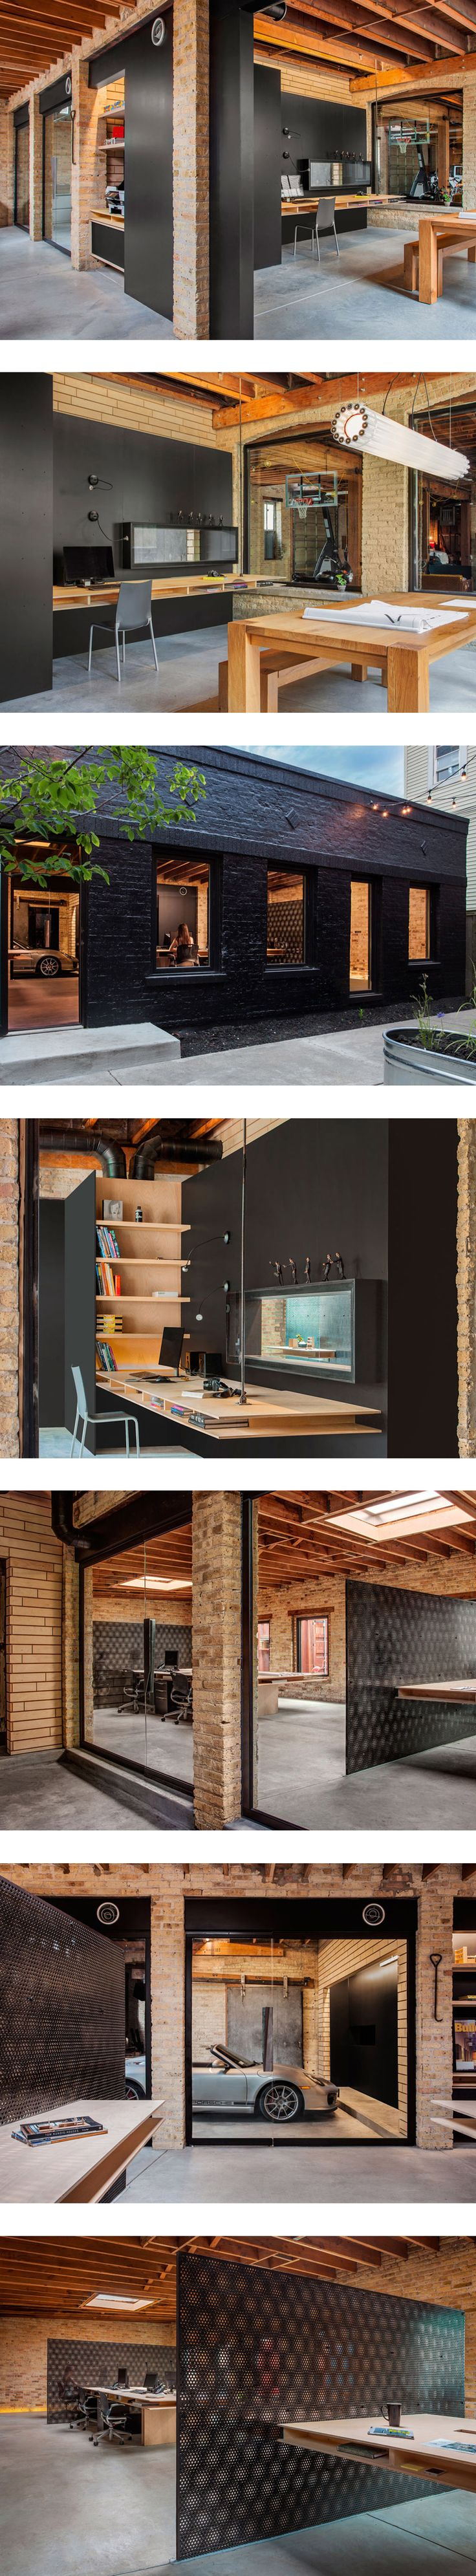 Best 25 Reclaimed wood chicago ideas on Pinterest Industrial